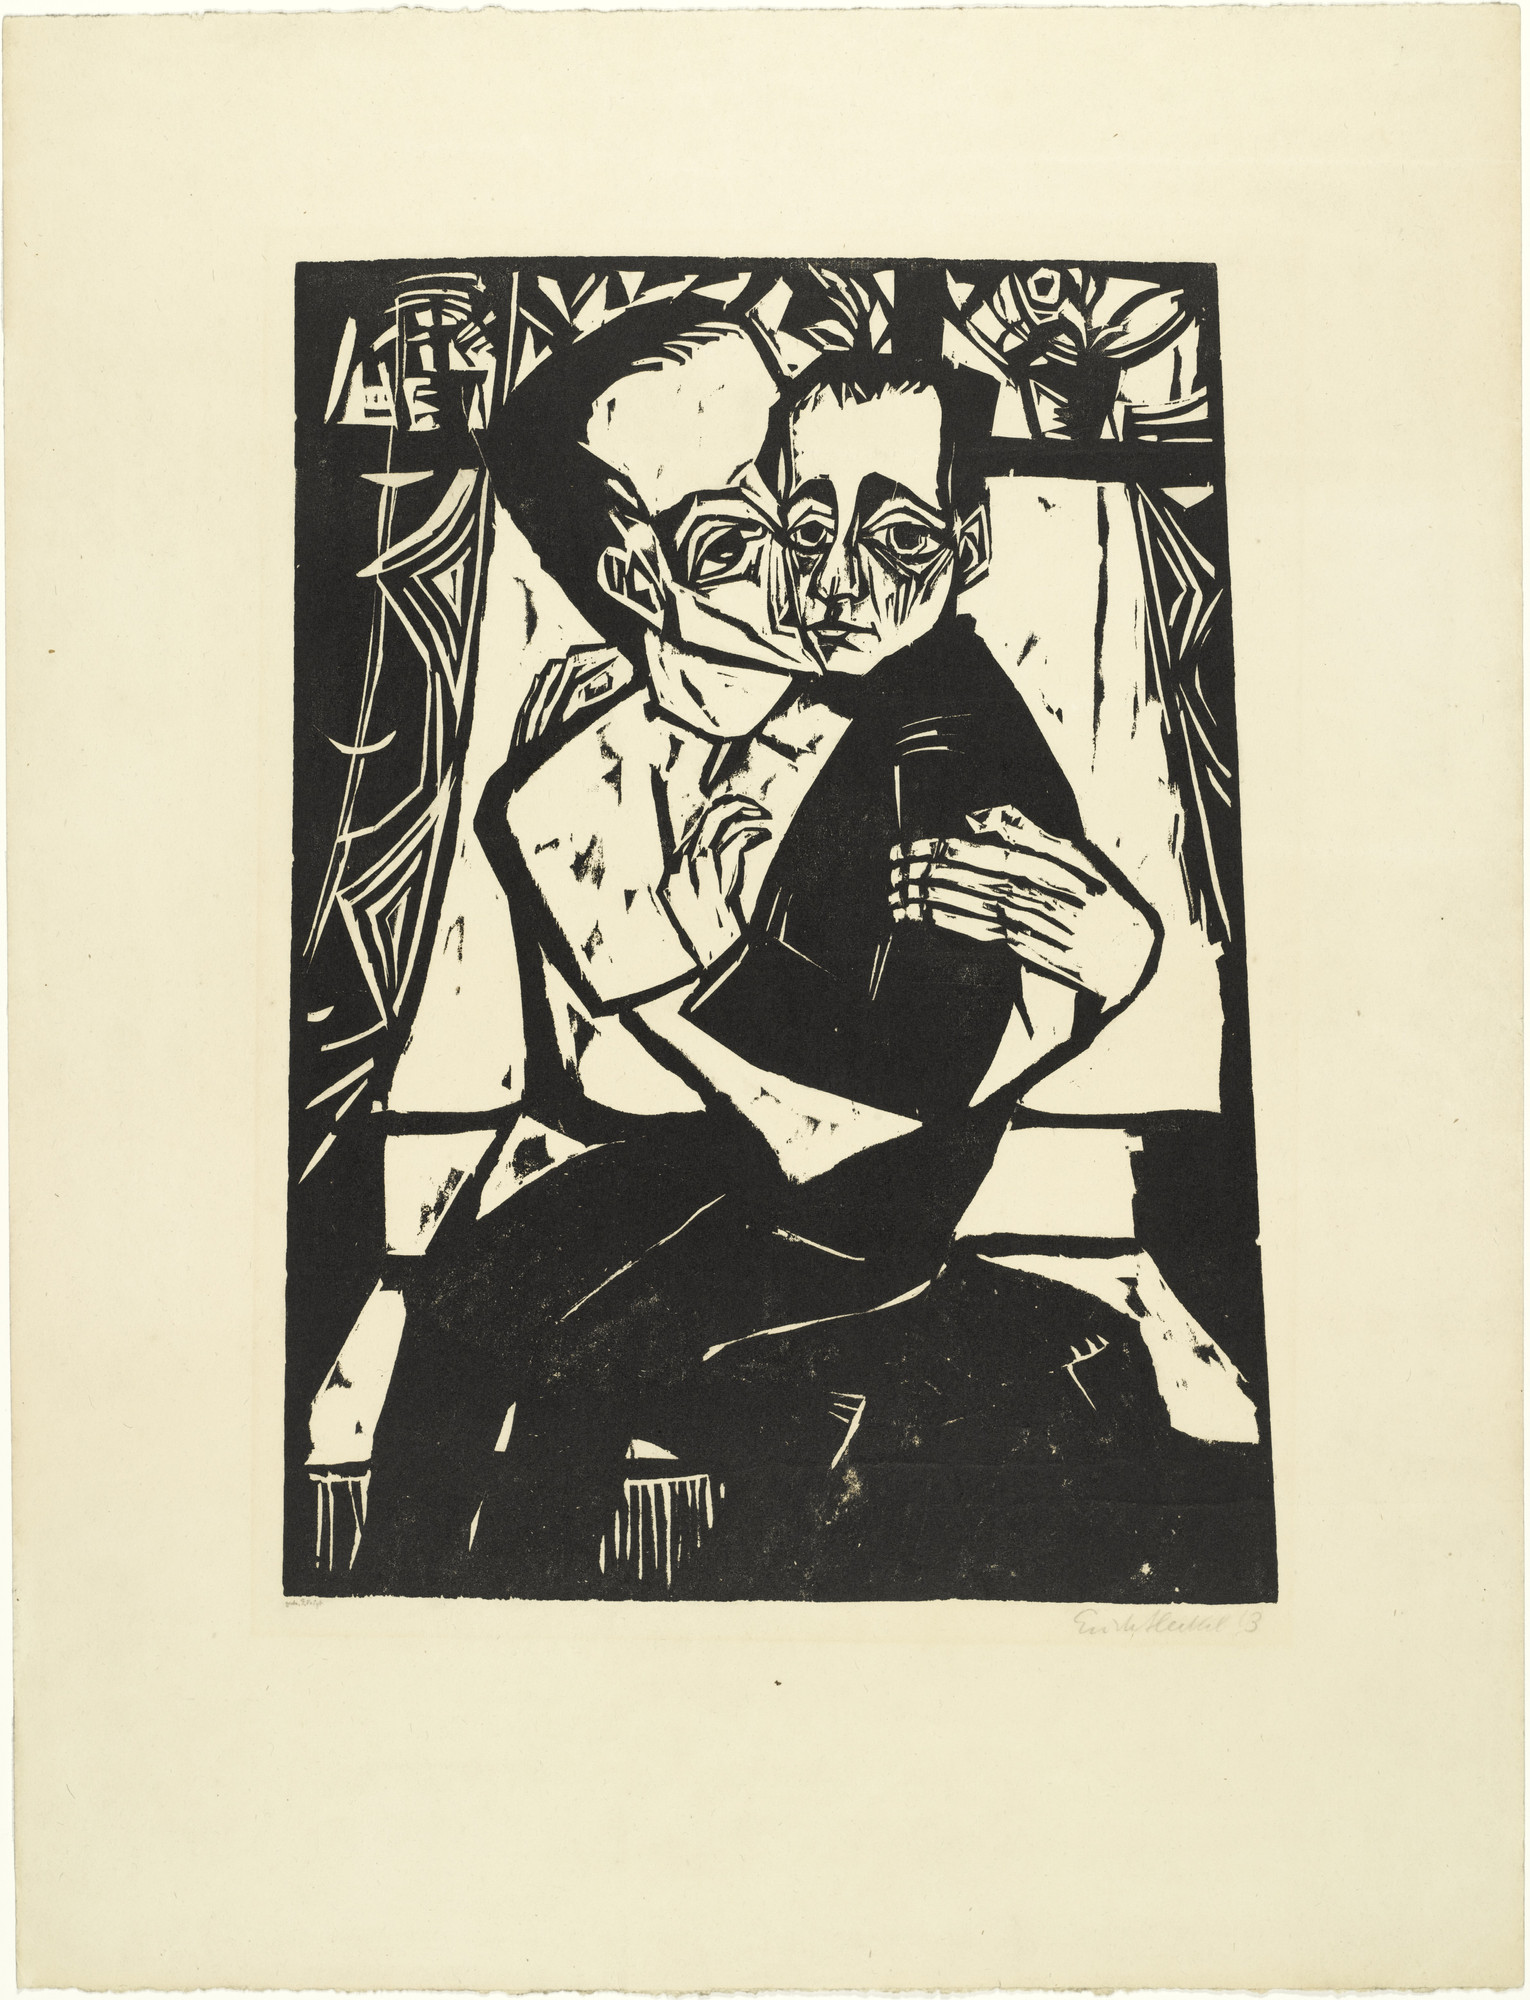 Erich Heckel. Siblings (Geschwister) from the portfolio Eleven Woodcuts, 1912-1919 (Elf Holzschnitte, 1912-1919). 1913 (published 1921)